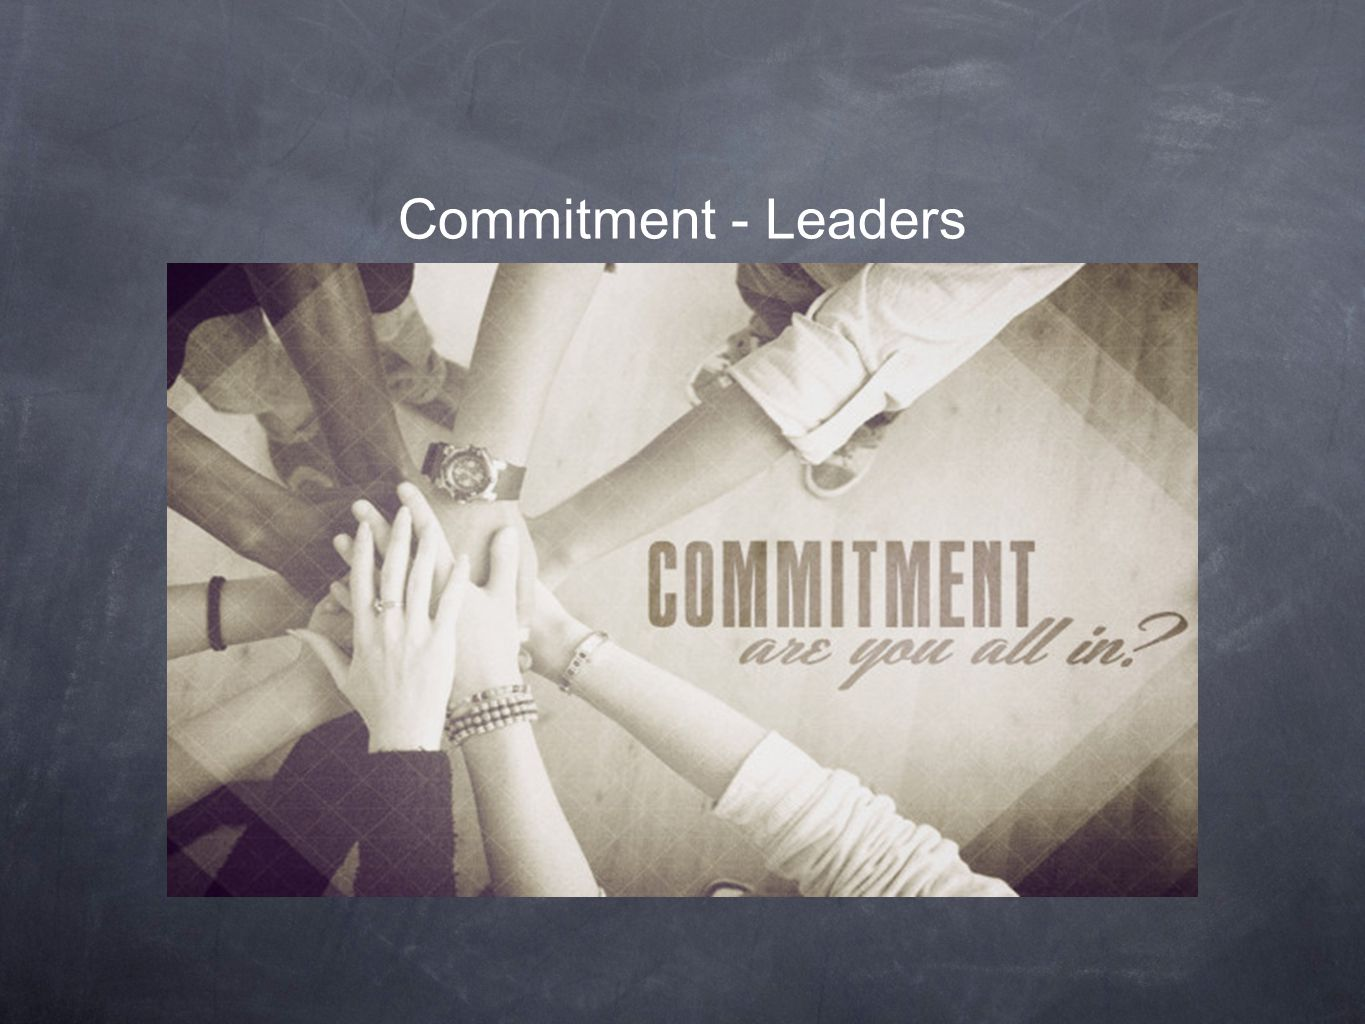 Commitment - Leaders